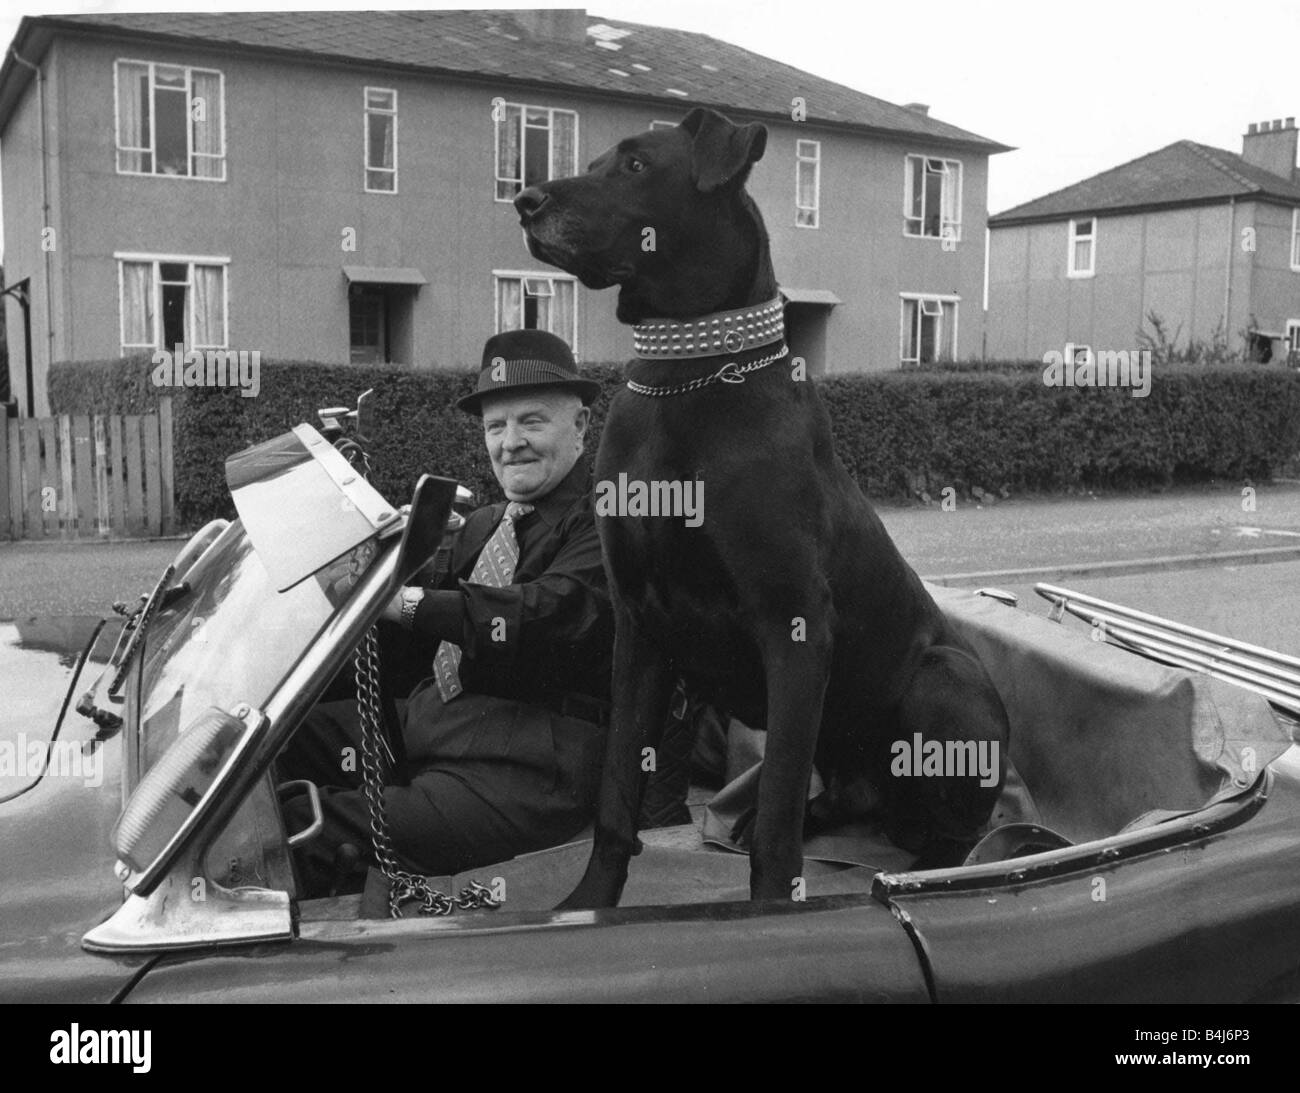 Alf McCormac with his Great Dane Flannigan in the sports car he bought specially for his pet Dog sitting in a convertible - Stock Image